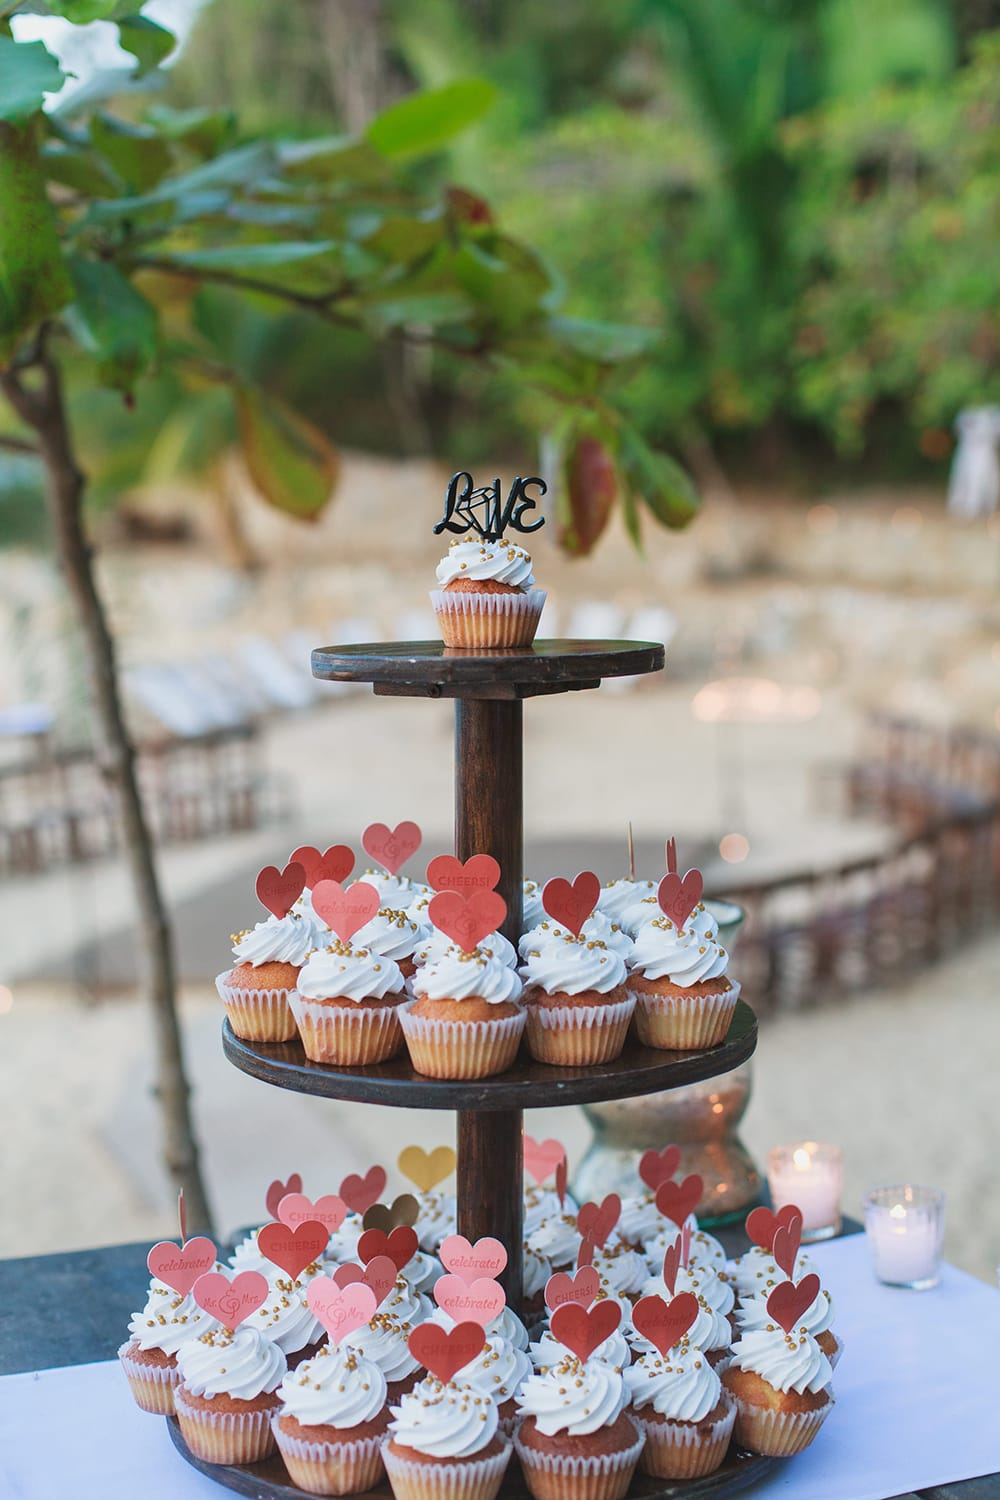 Sweet cupcakes on cake stand for outdoor wedding reception by Adventure Weddings